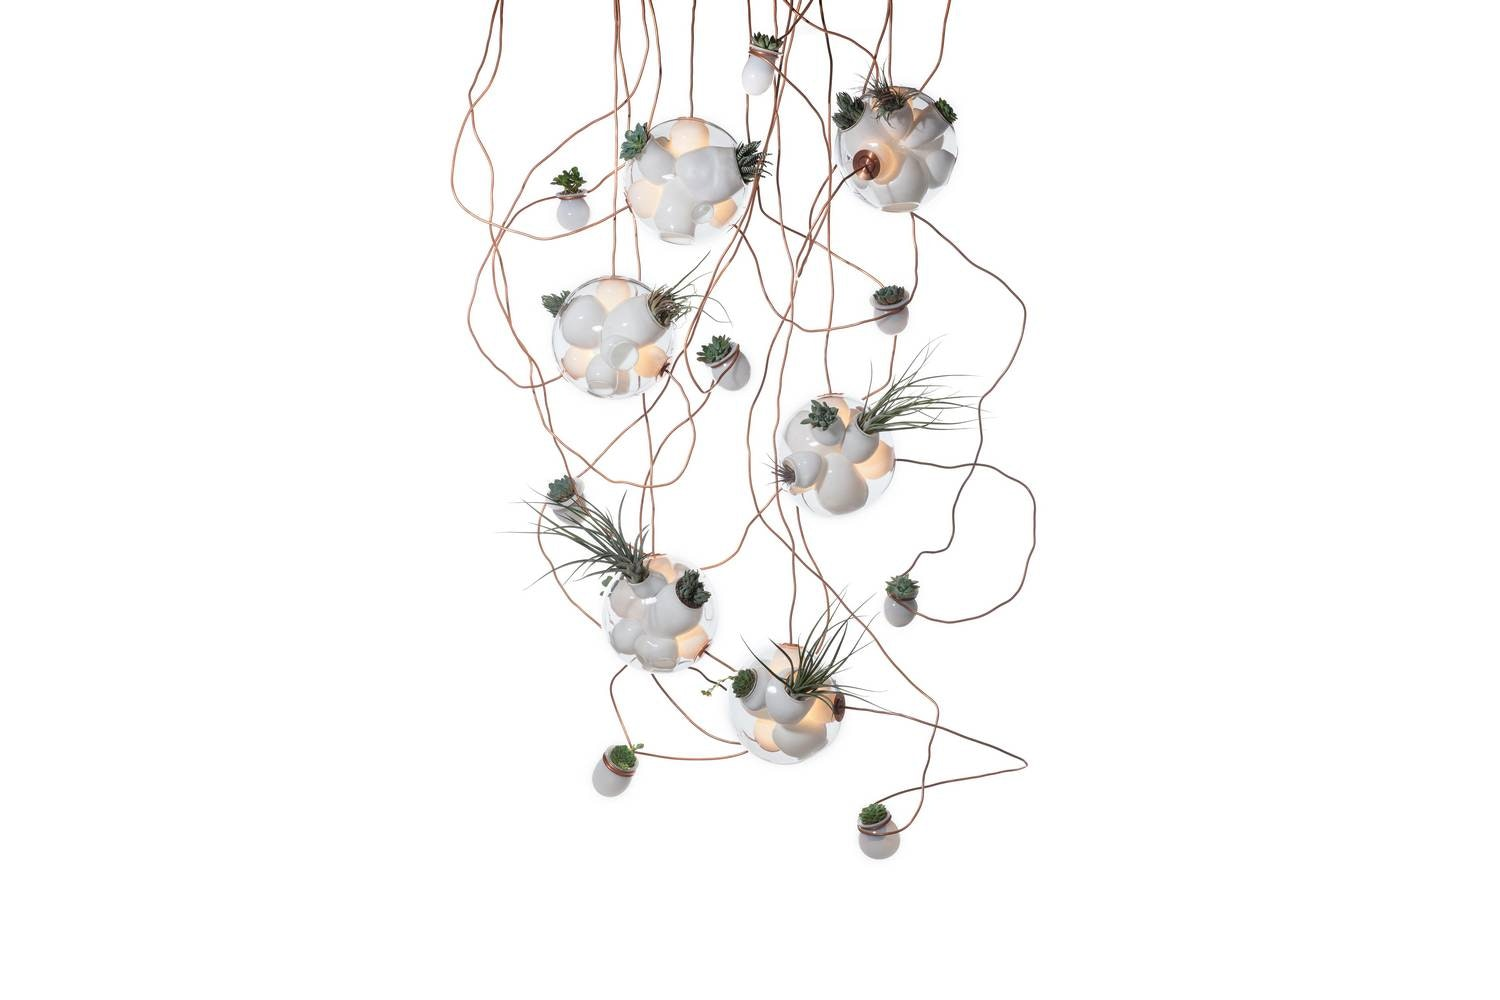 38.16 Suspension Lamp by Omer Arbel for Bocci